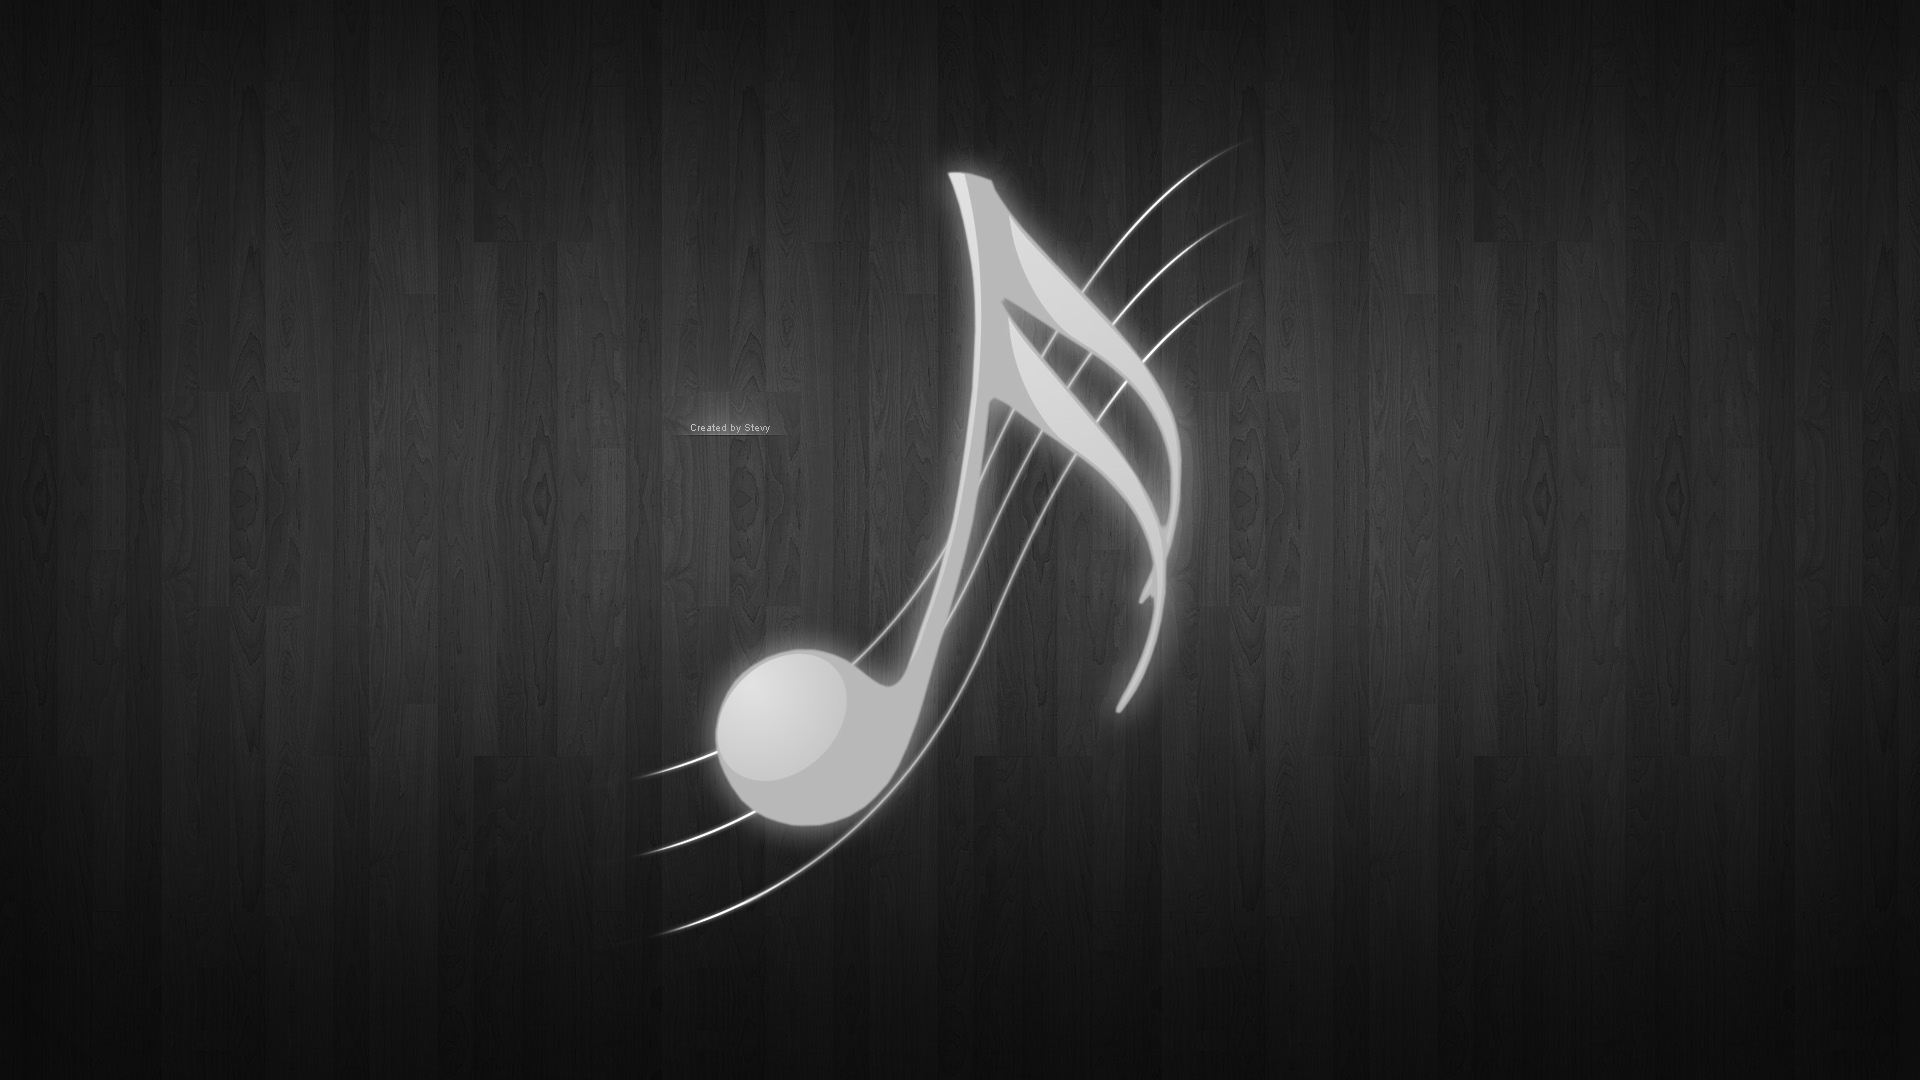 Music Background Images: Music Wallpapers 1920x1080